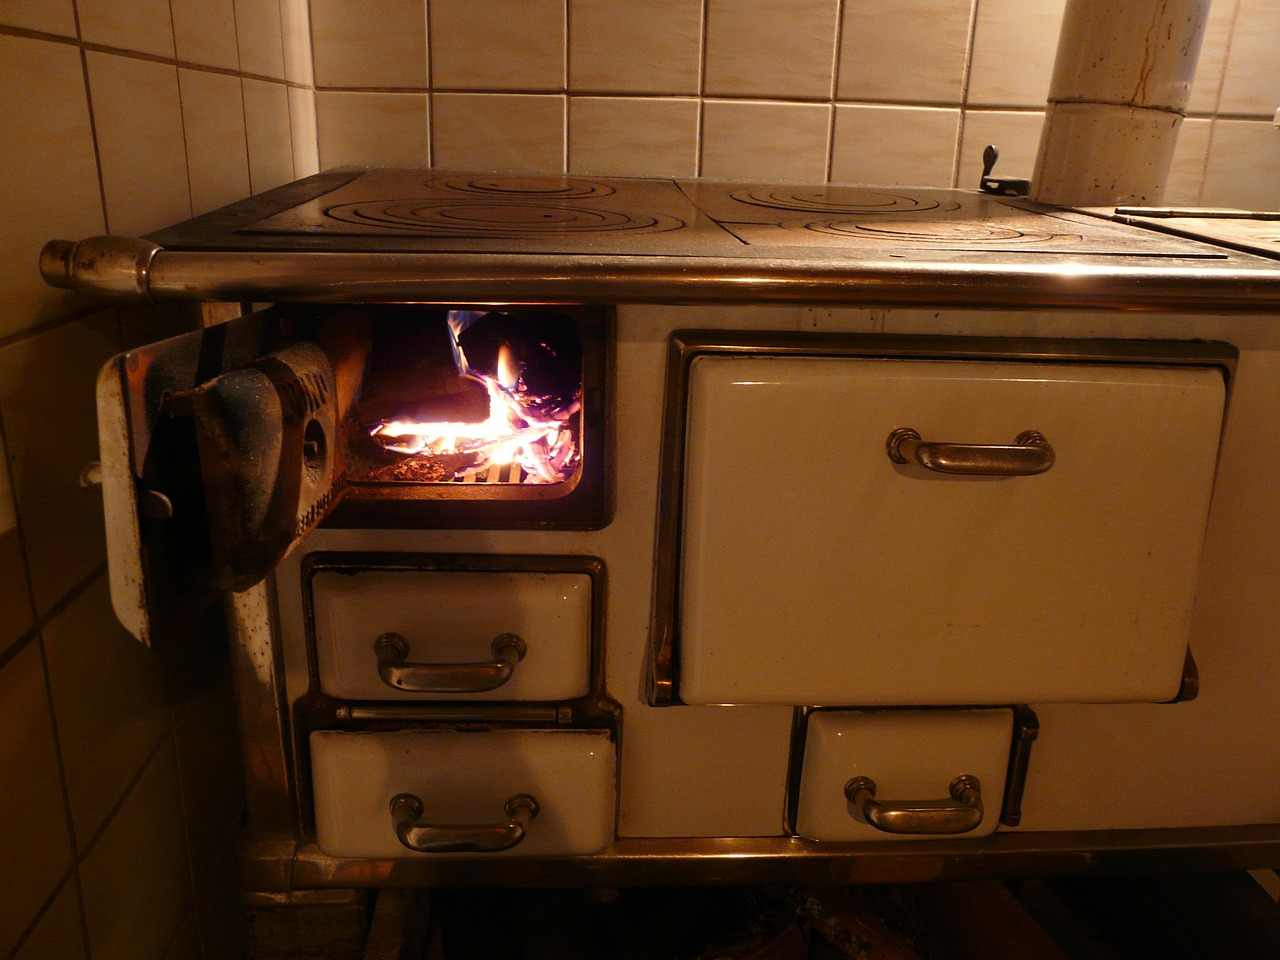 oven stove fire free photo